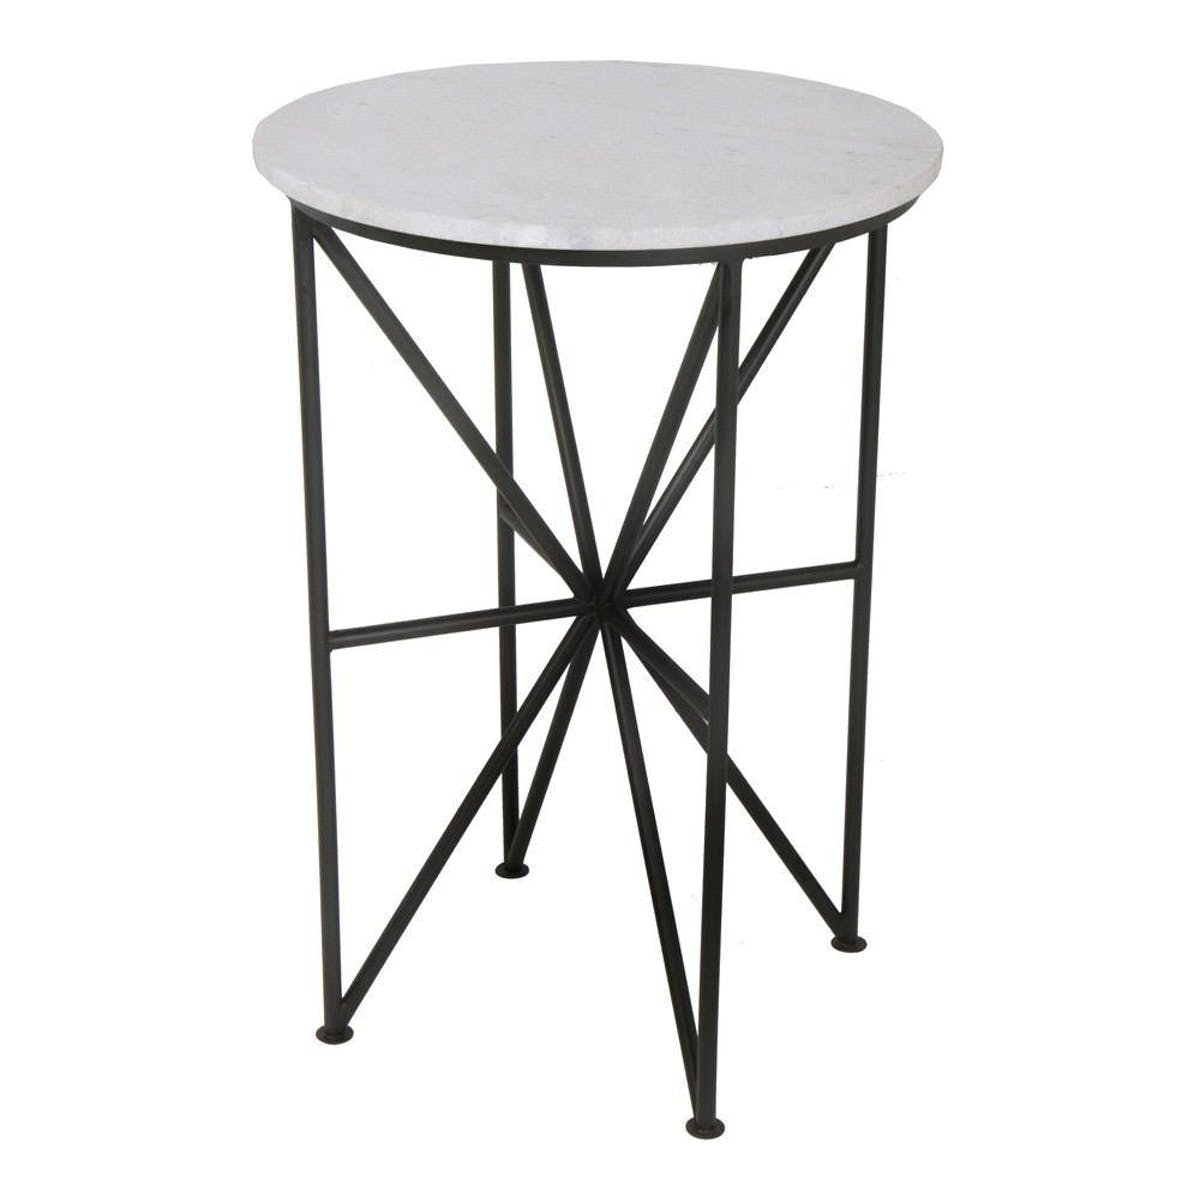 moe home collection quadrant marble accent table modish black tap expand country end tables solid wood coffee with storage kids bedside corner foyer bedroom console gold leaf all